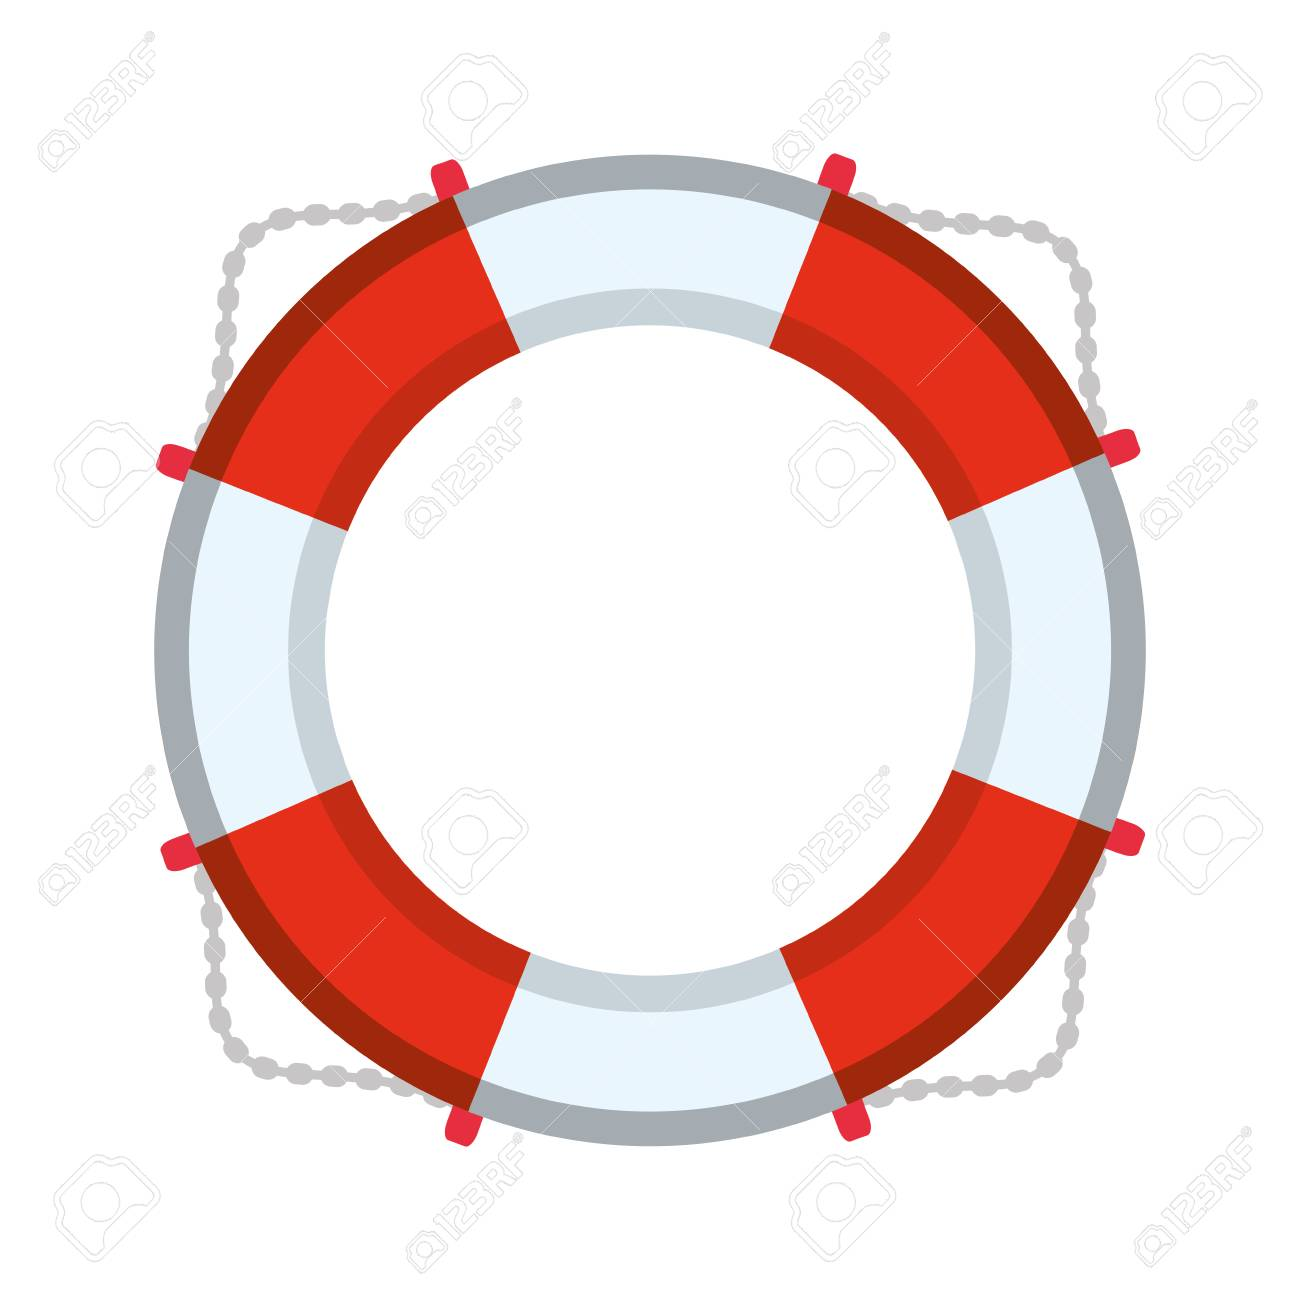 nautical life ring icon